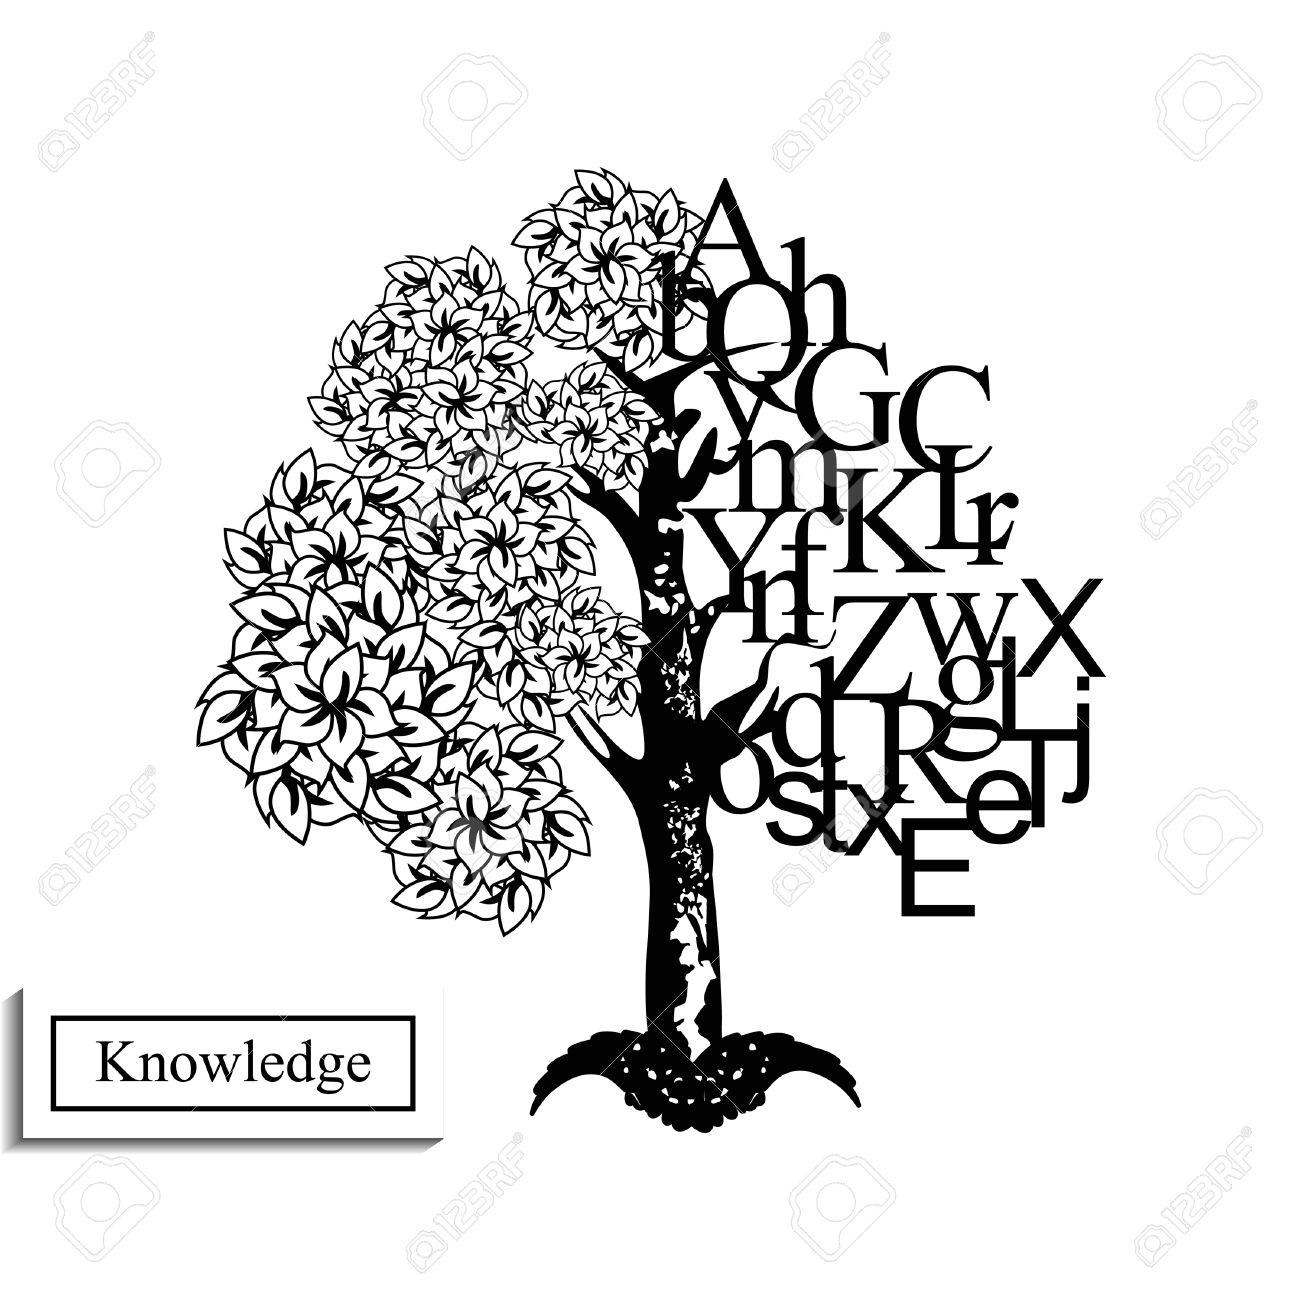 63378820-Black-and-white-image-of-knowledge-tree-Stock-Vector